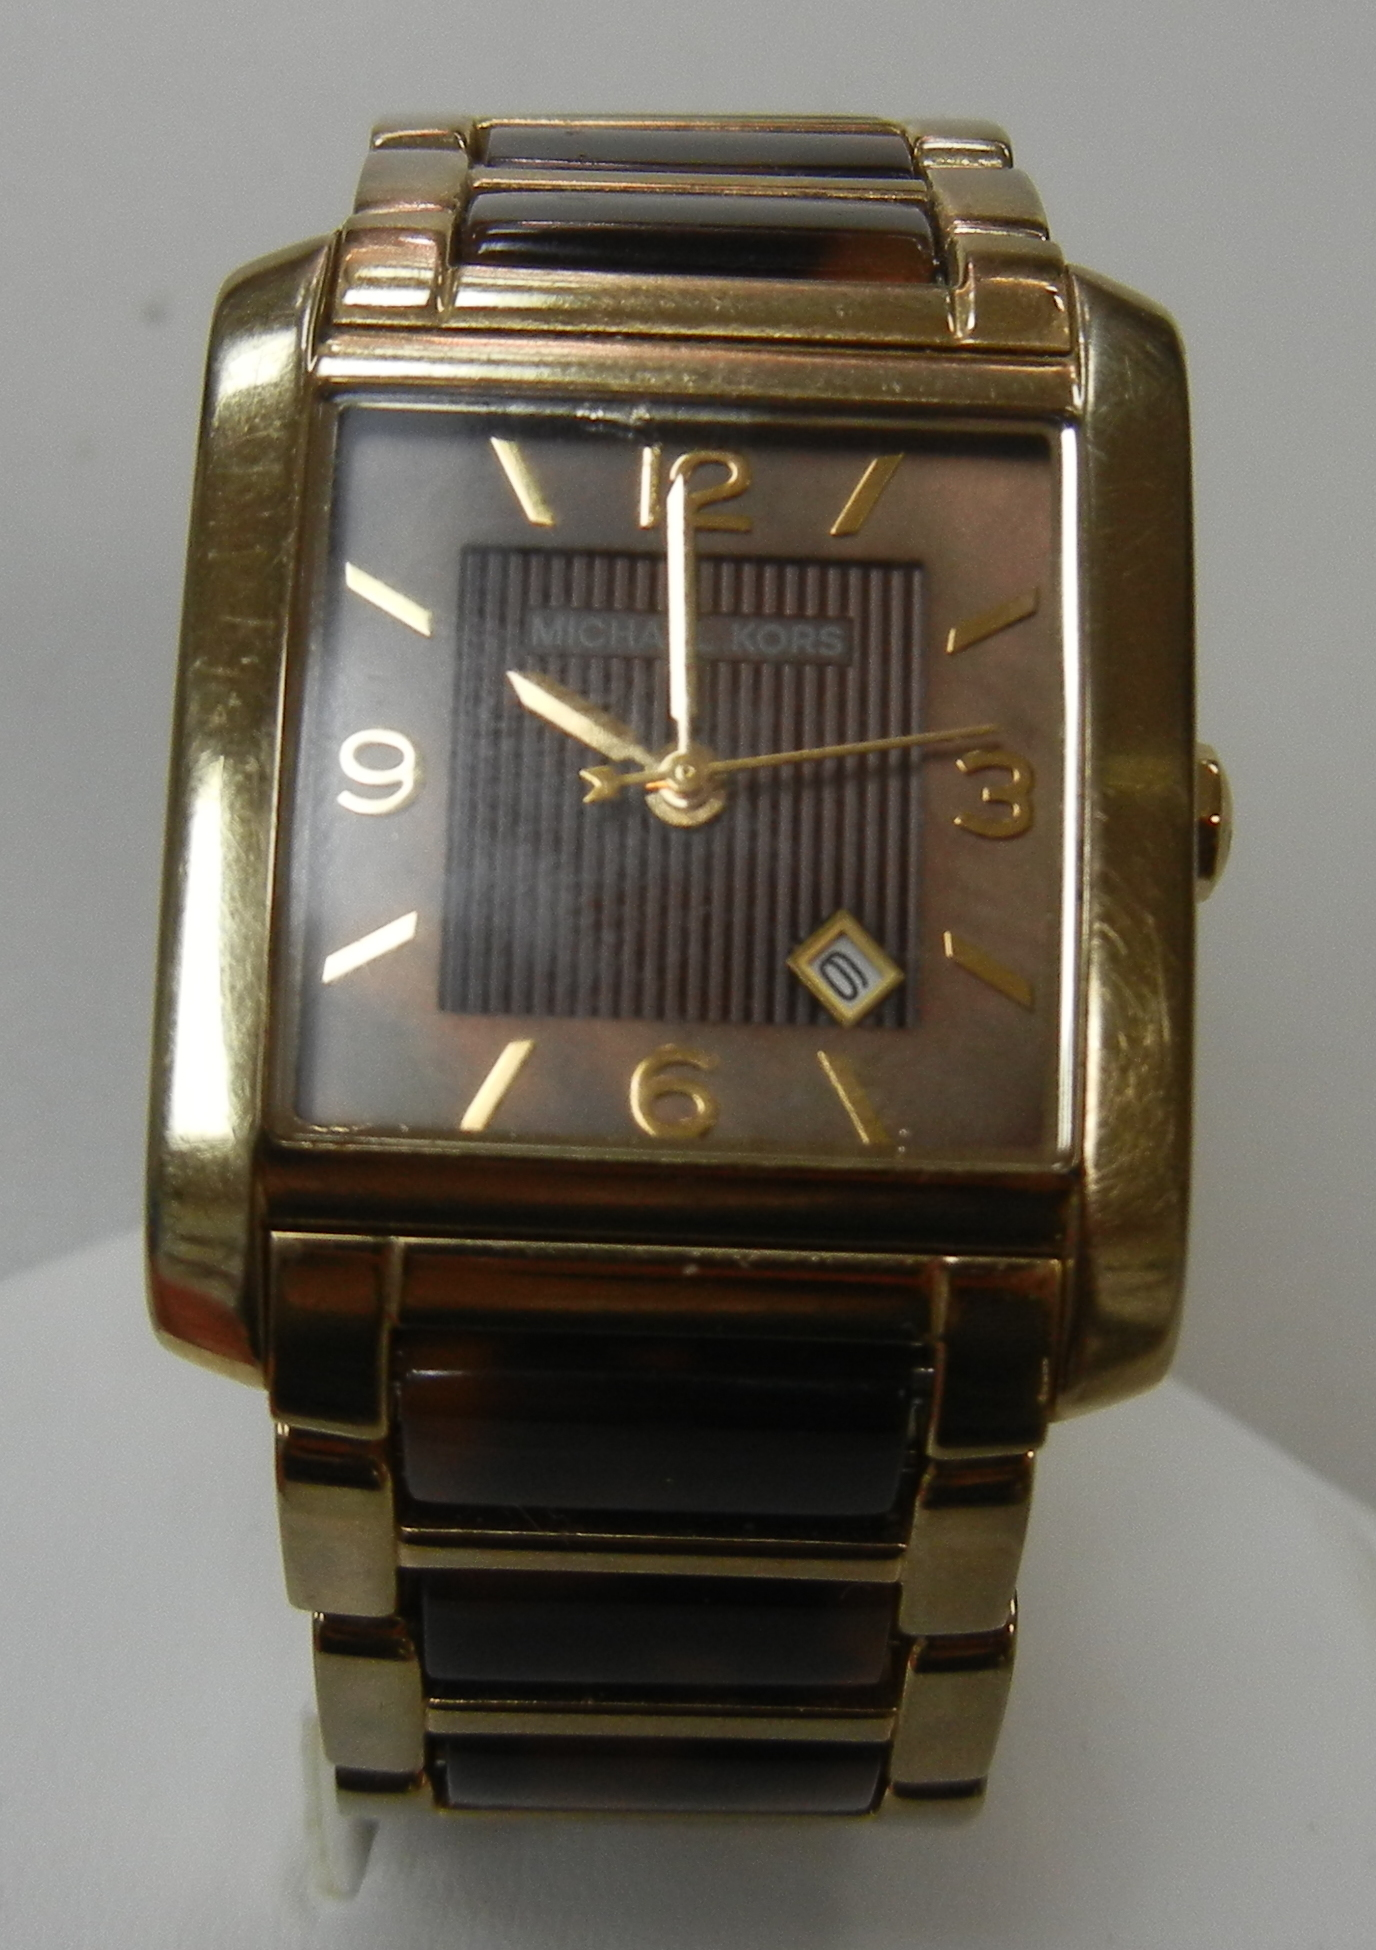 MICHAEL KORS - MK-4242 VINTAGE WATCH